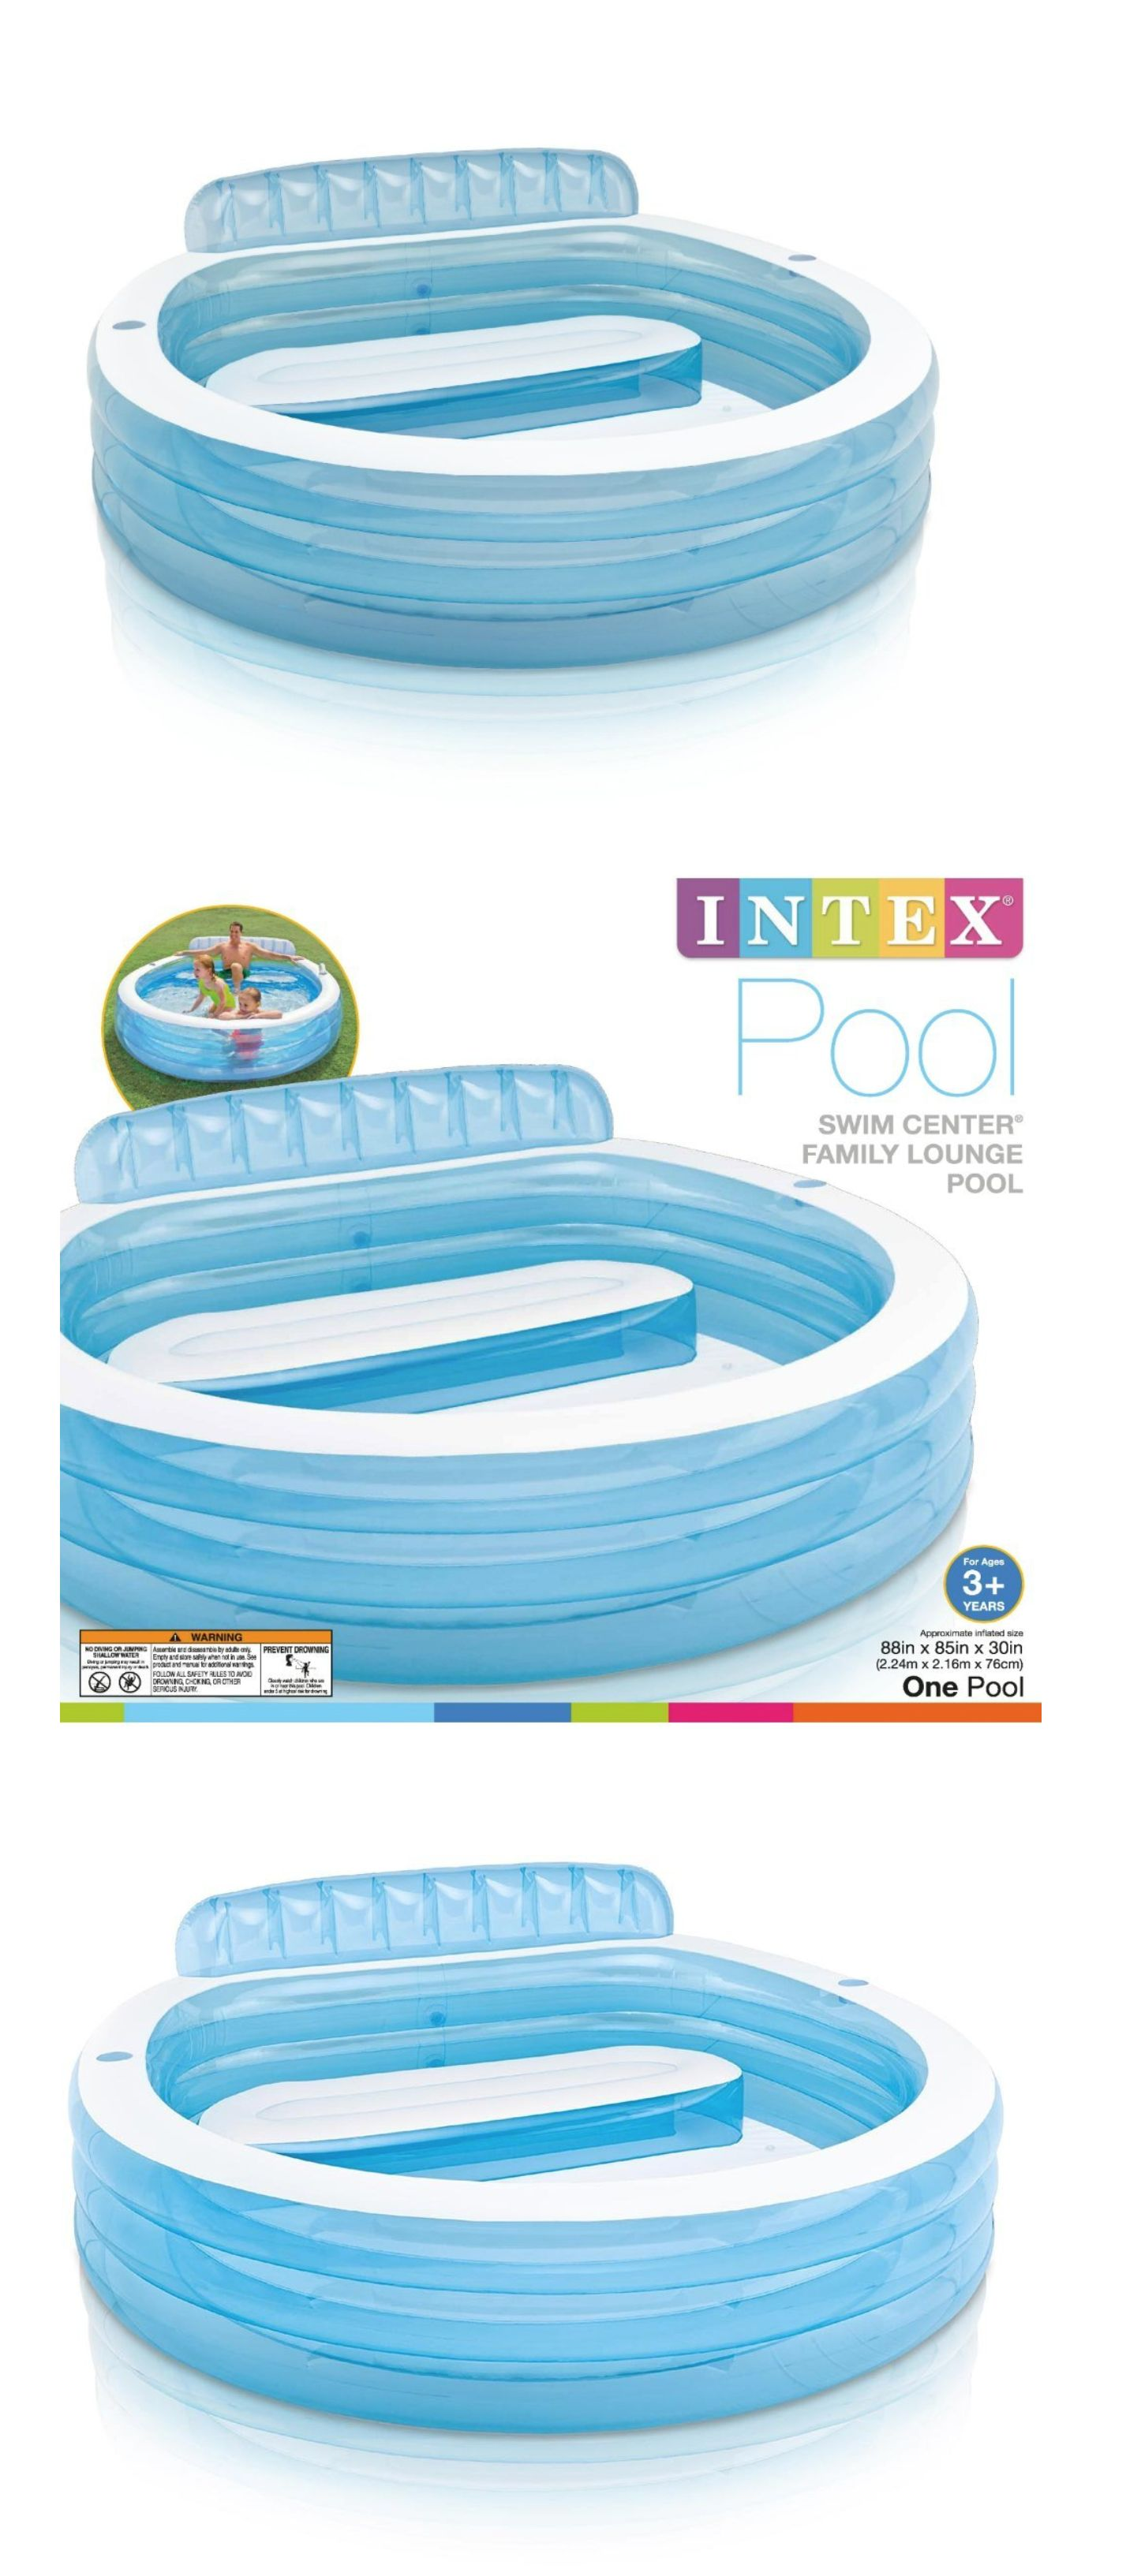 Inflatable And Kid Pools 116407 Blow Up Pool Top Summer Toy Backyard Accessories For Kid In Water Lounge New Blow Up Pool Backyard Accessories Summer Toys